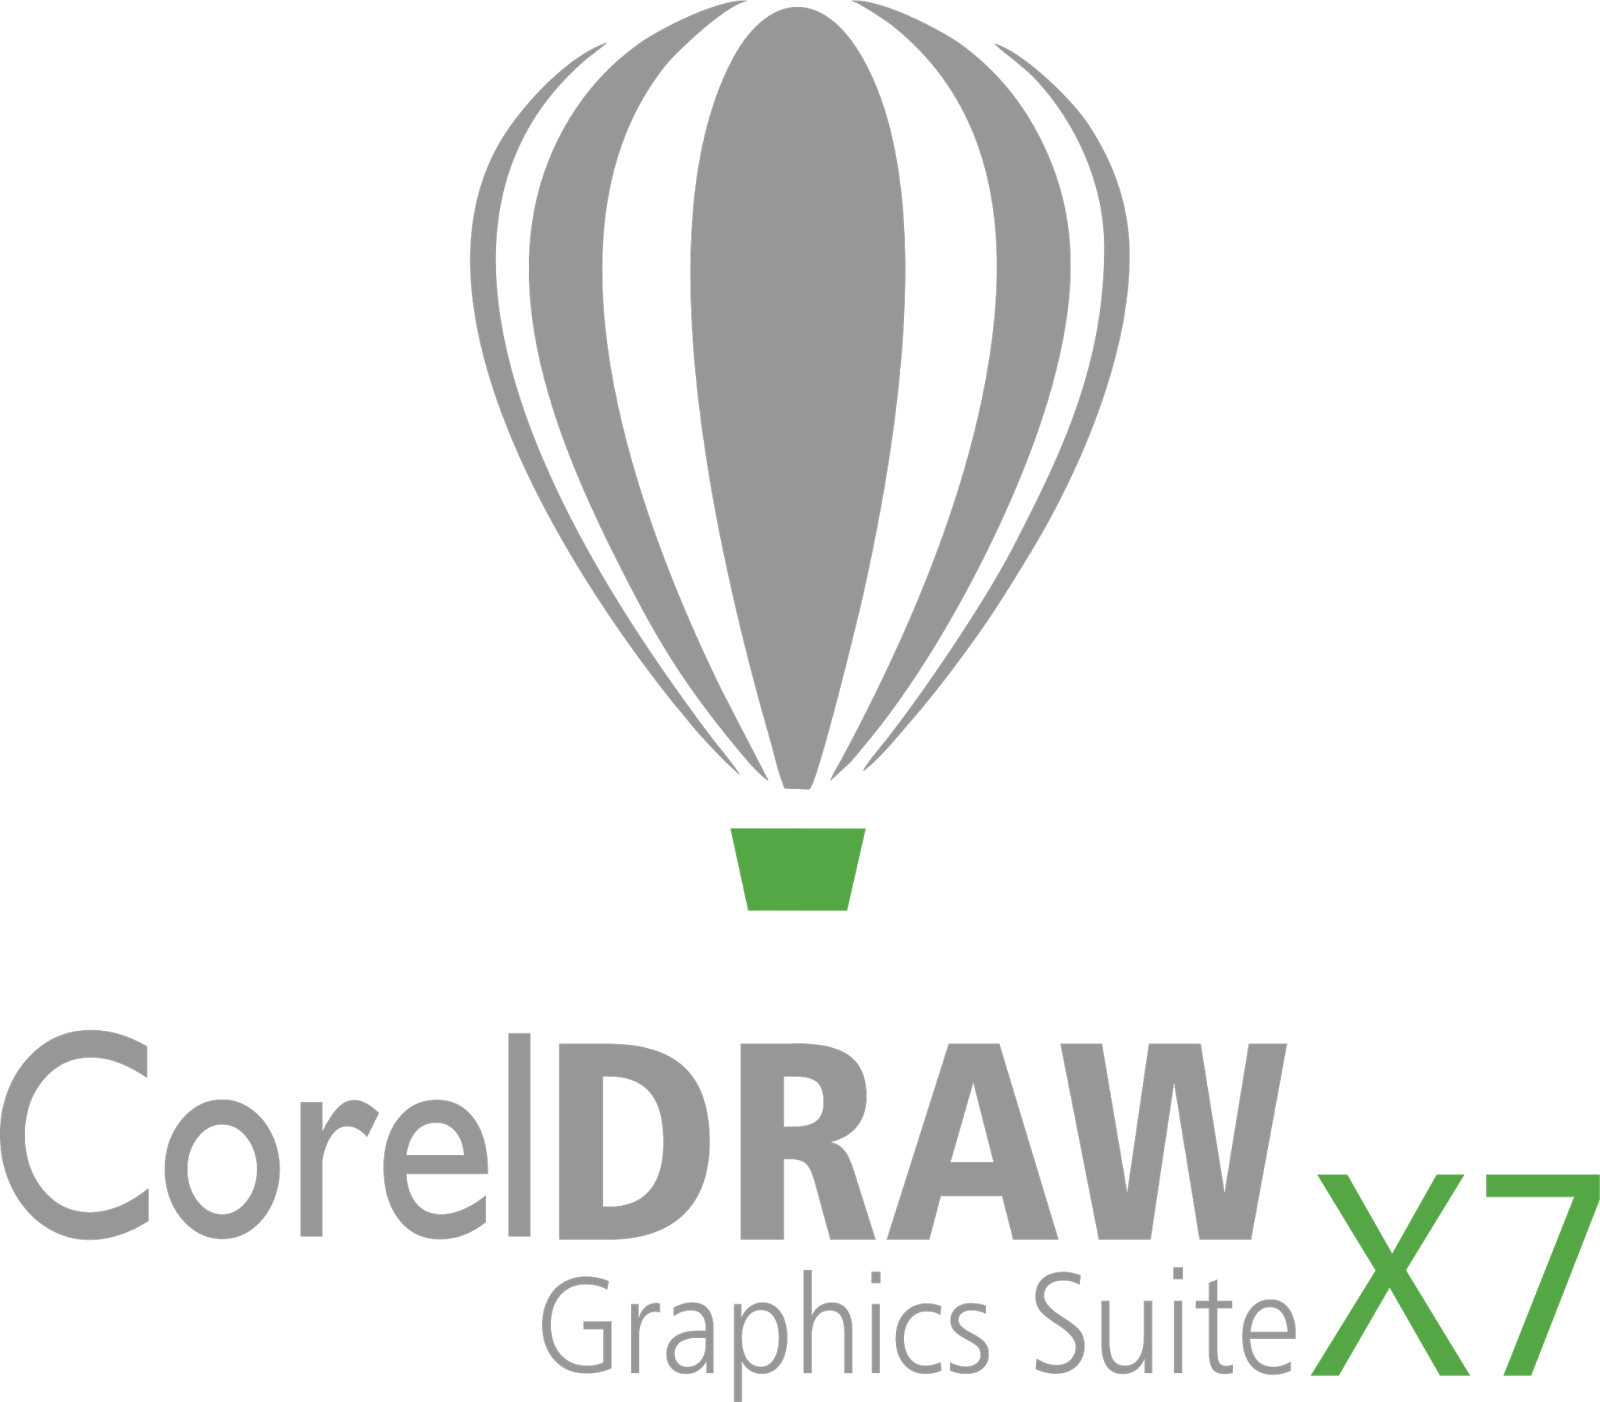 coreldraw graphics suite x6 лечение